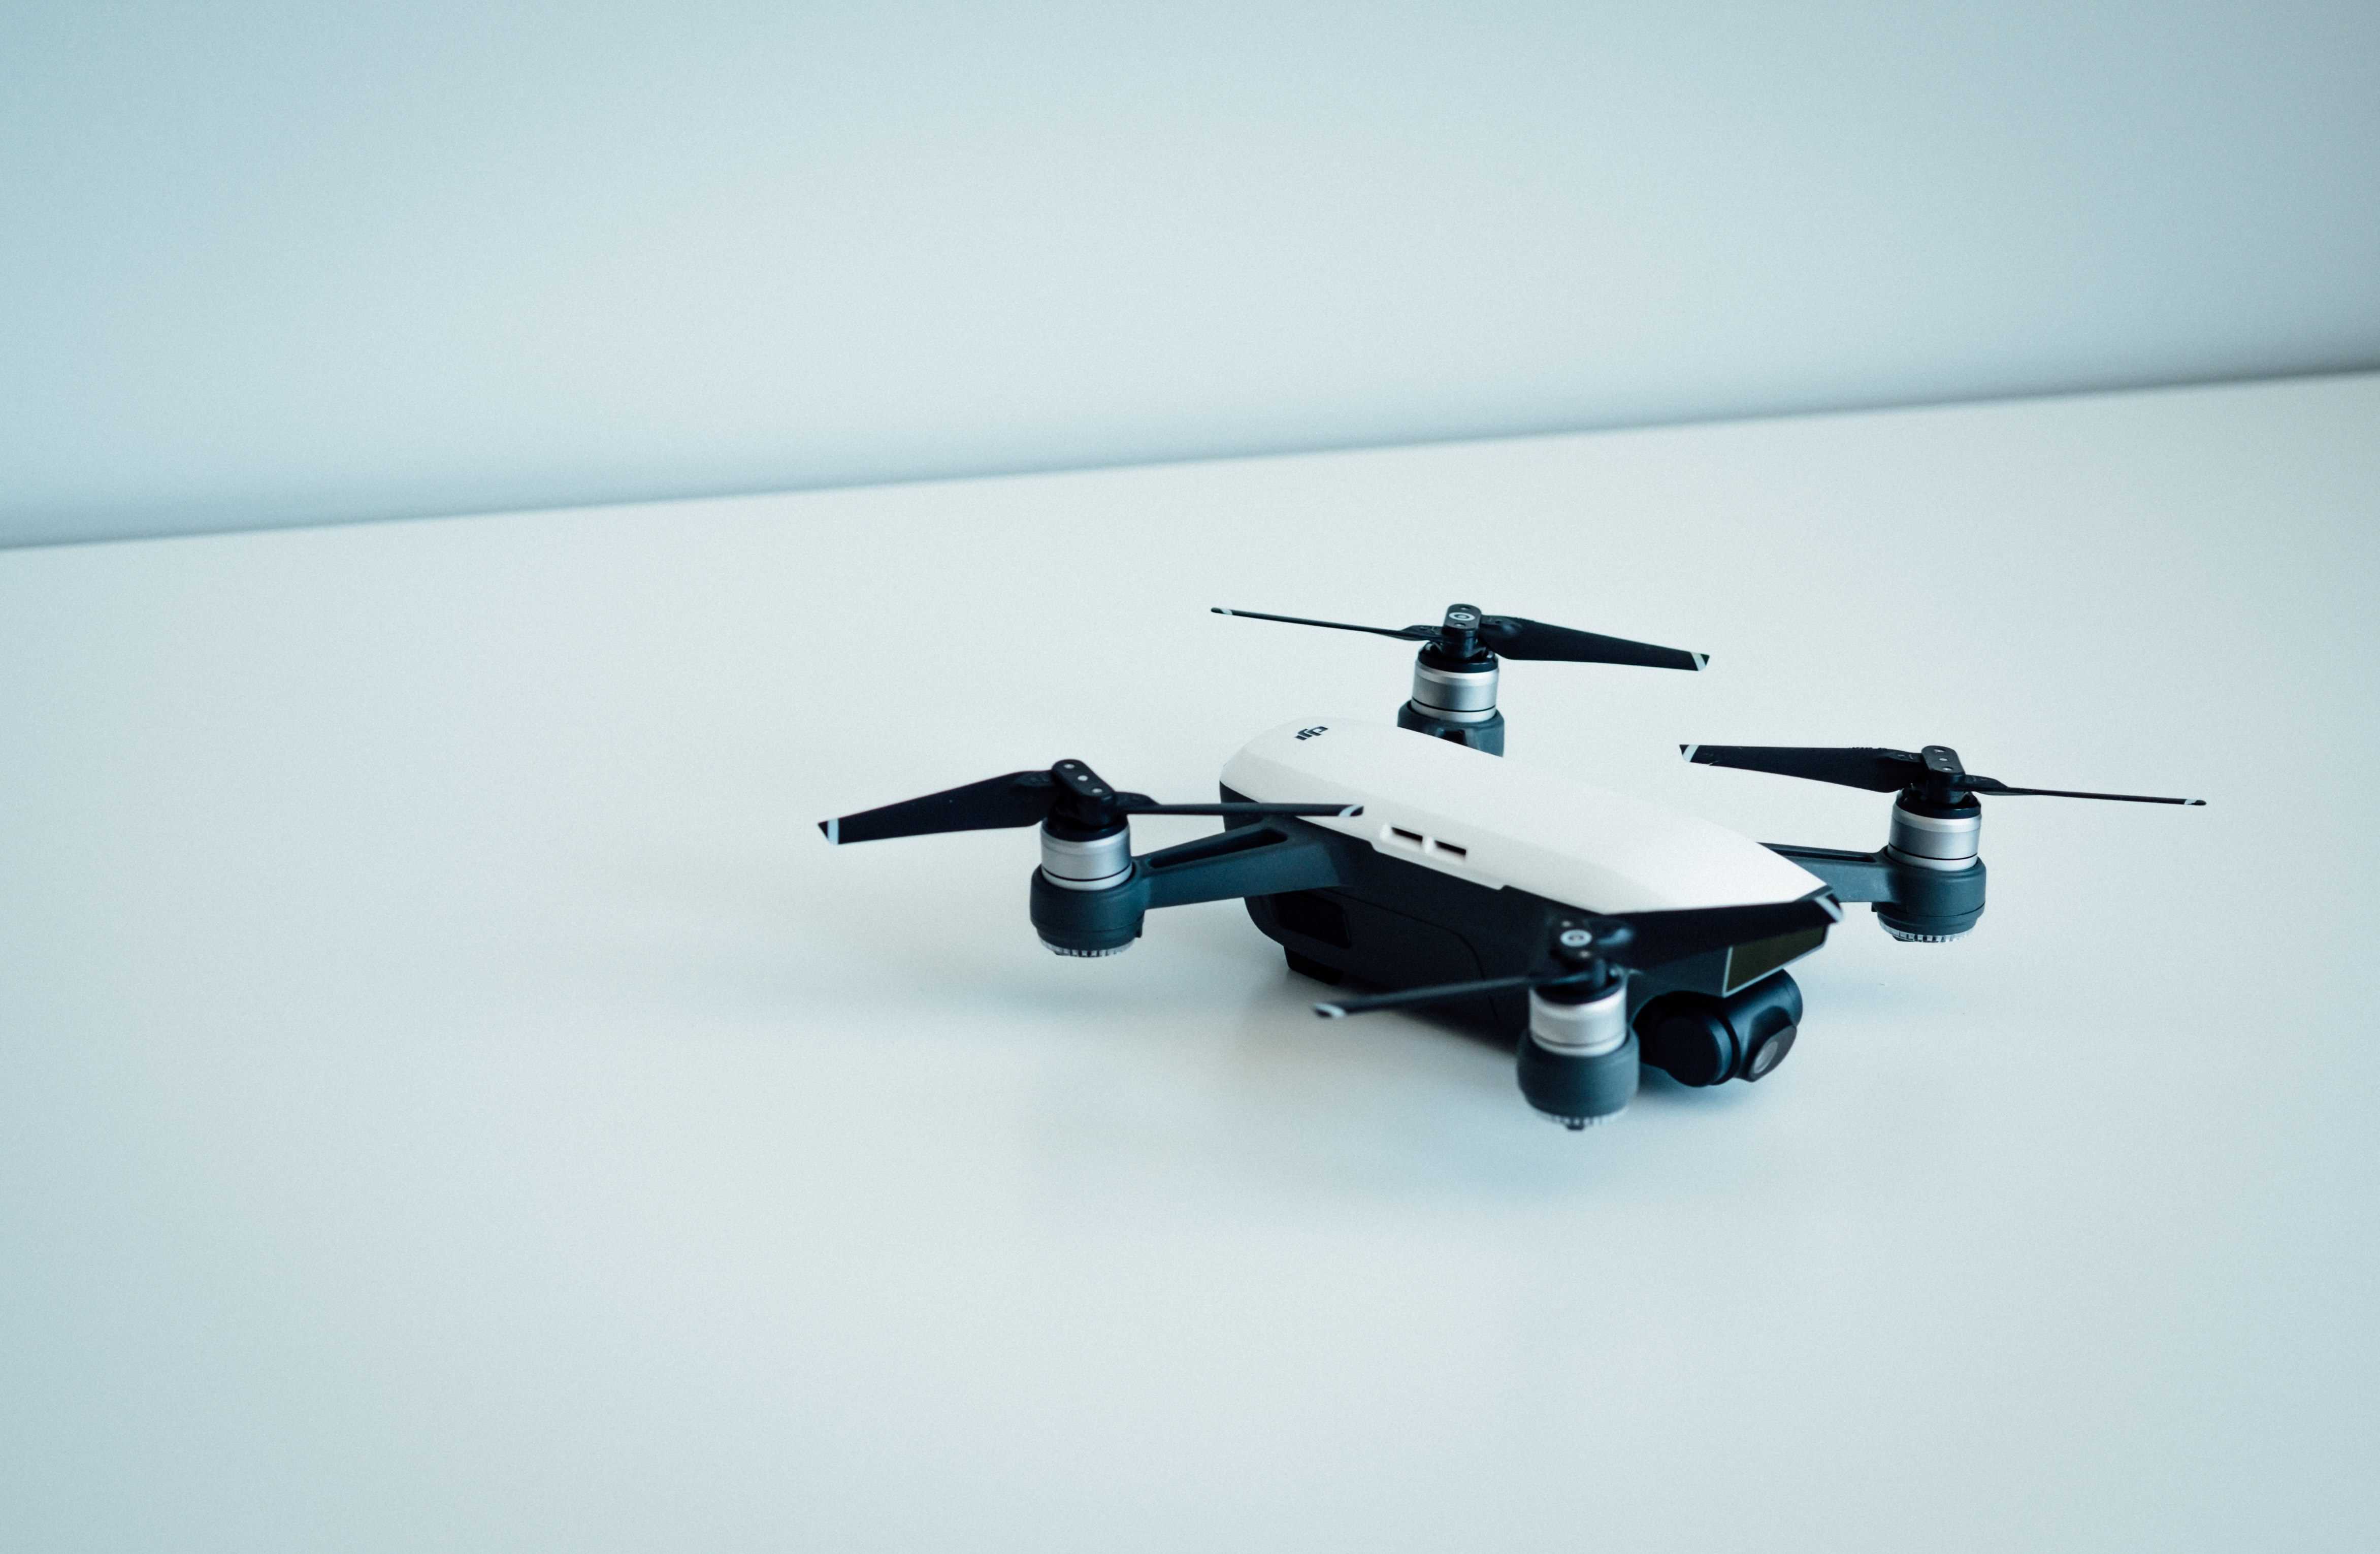 white and black quad copter drone